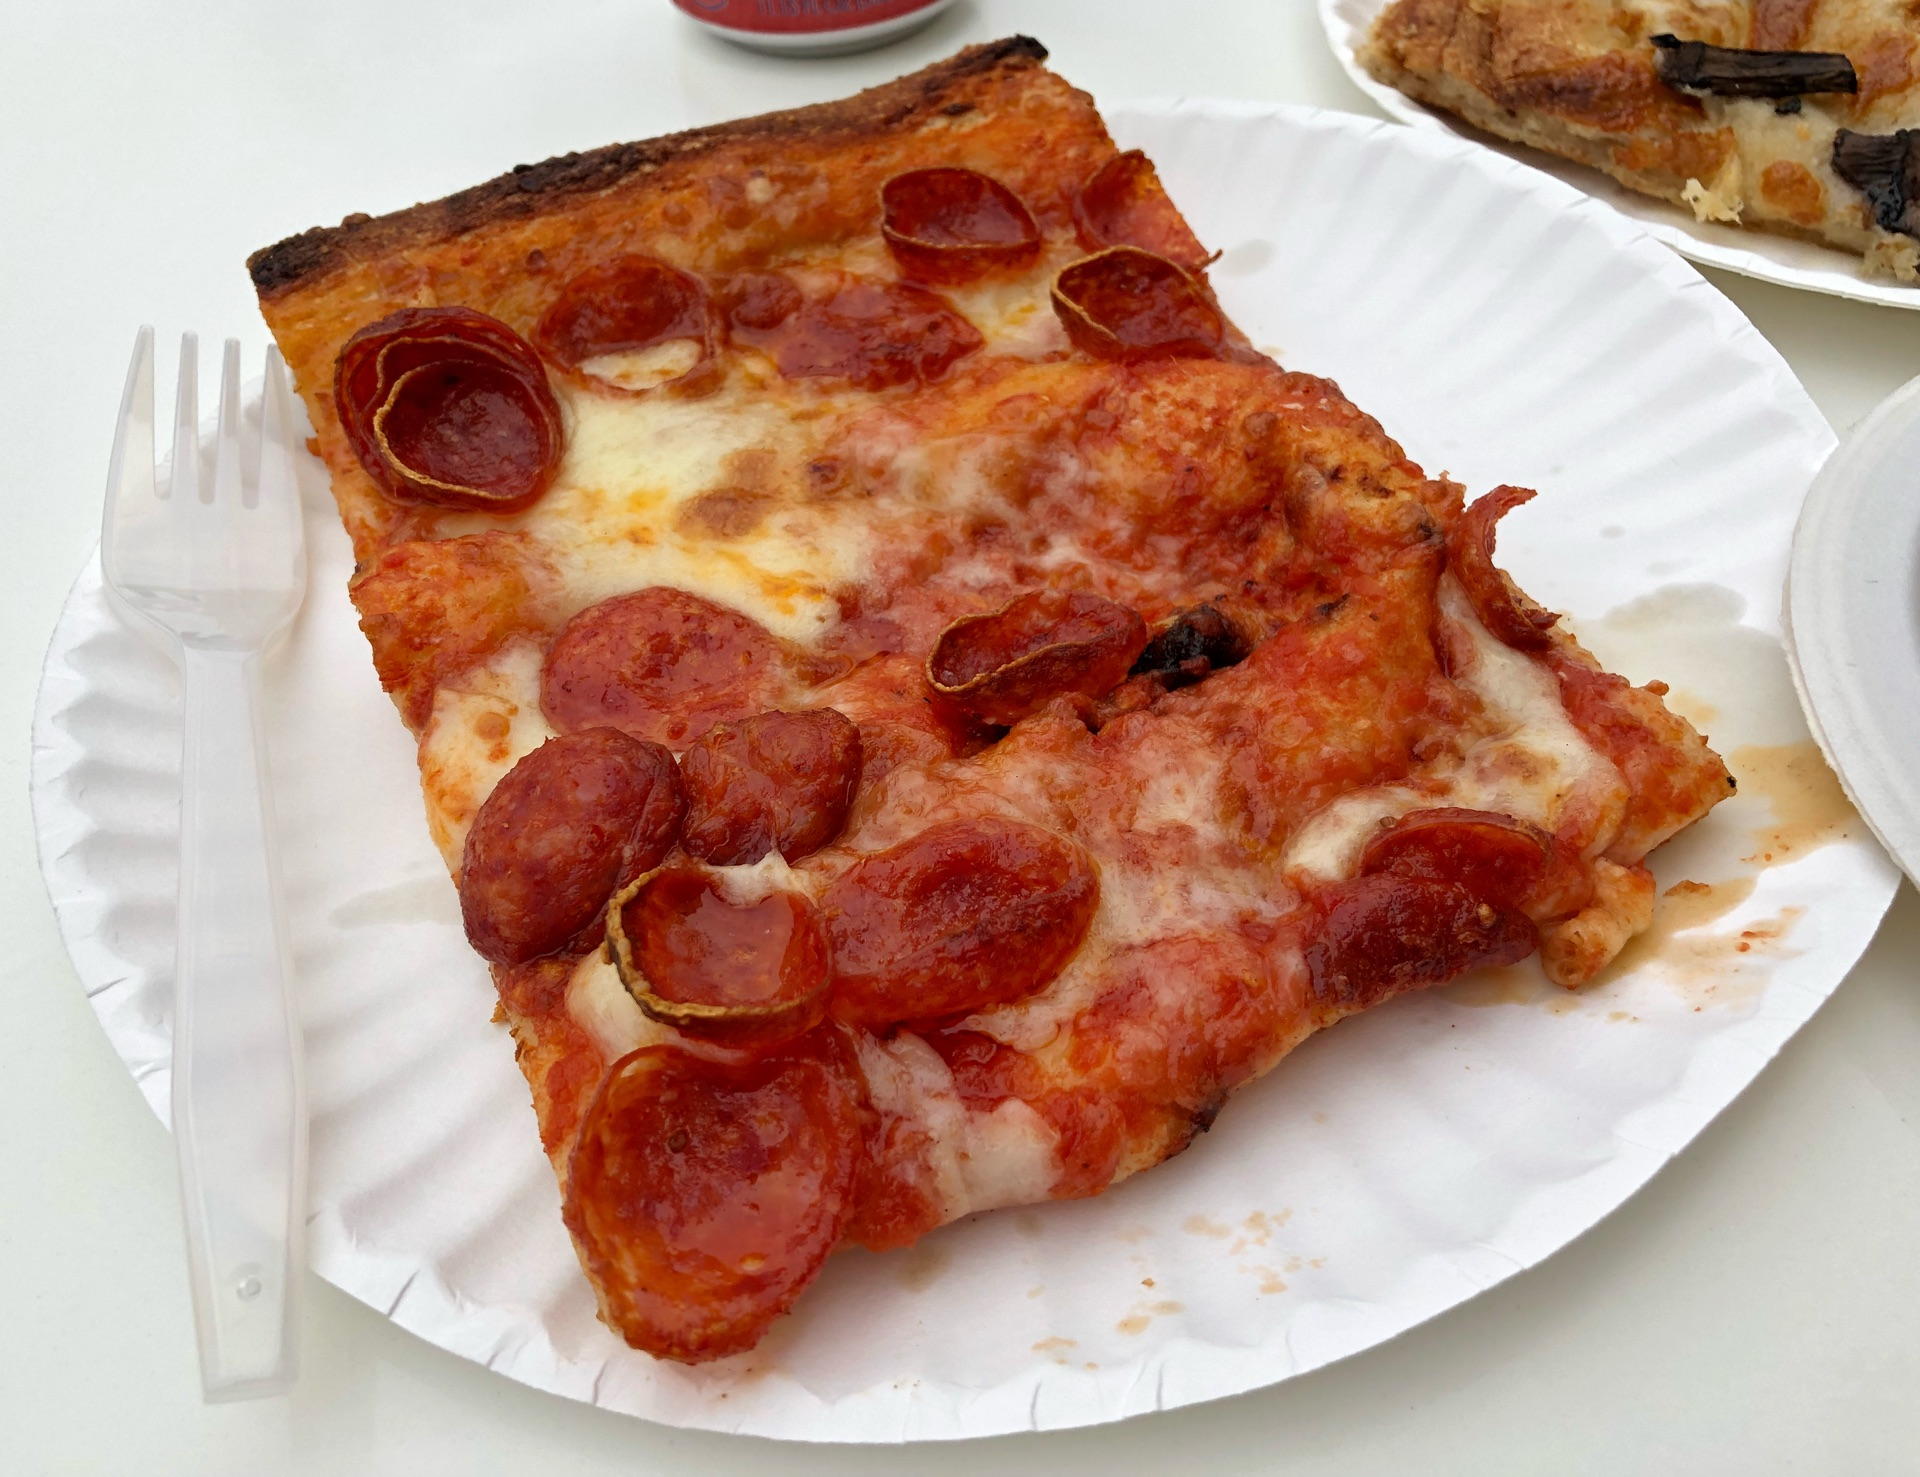 Pepperoni slice